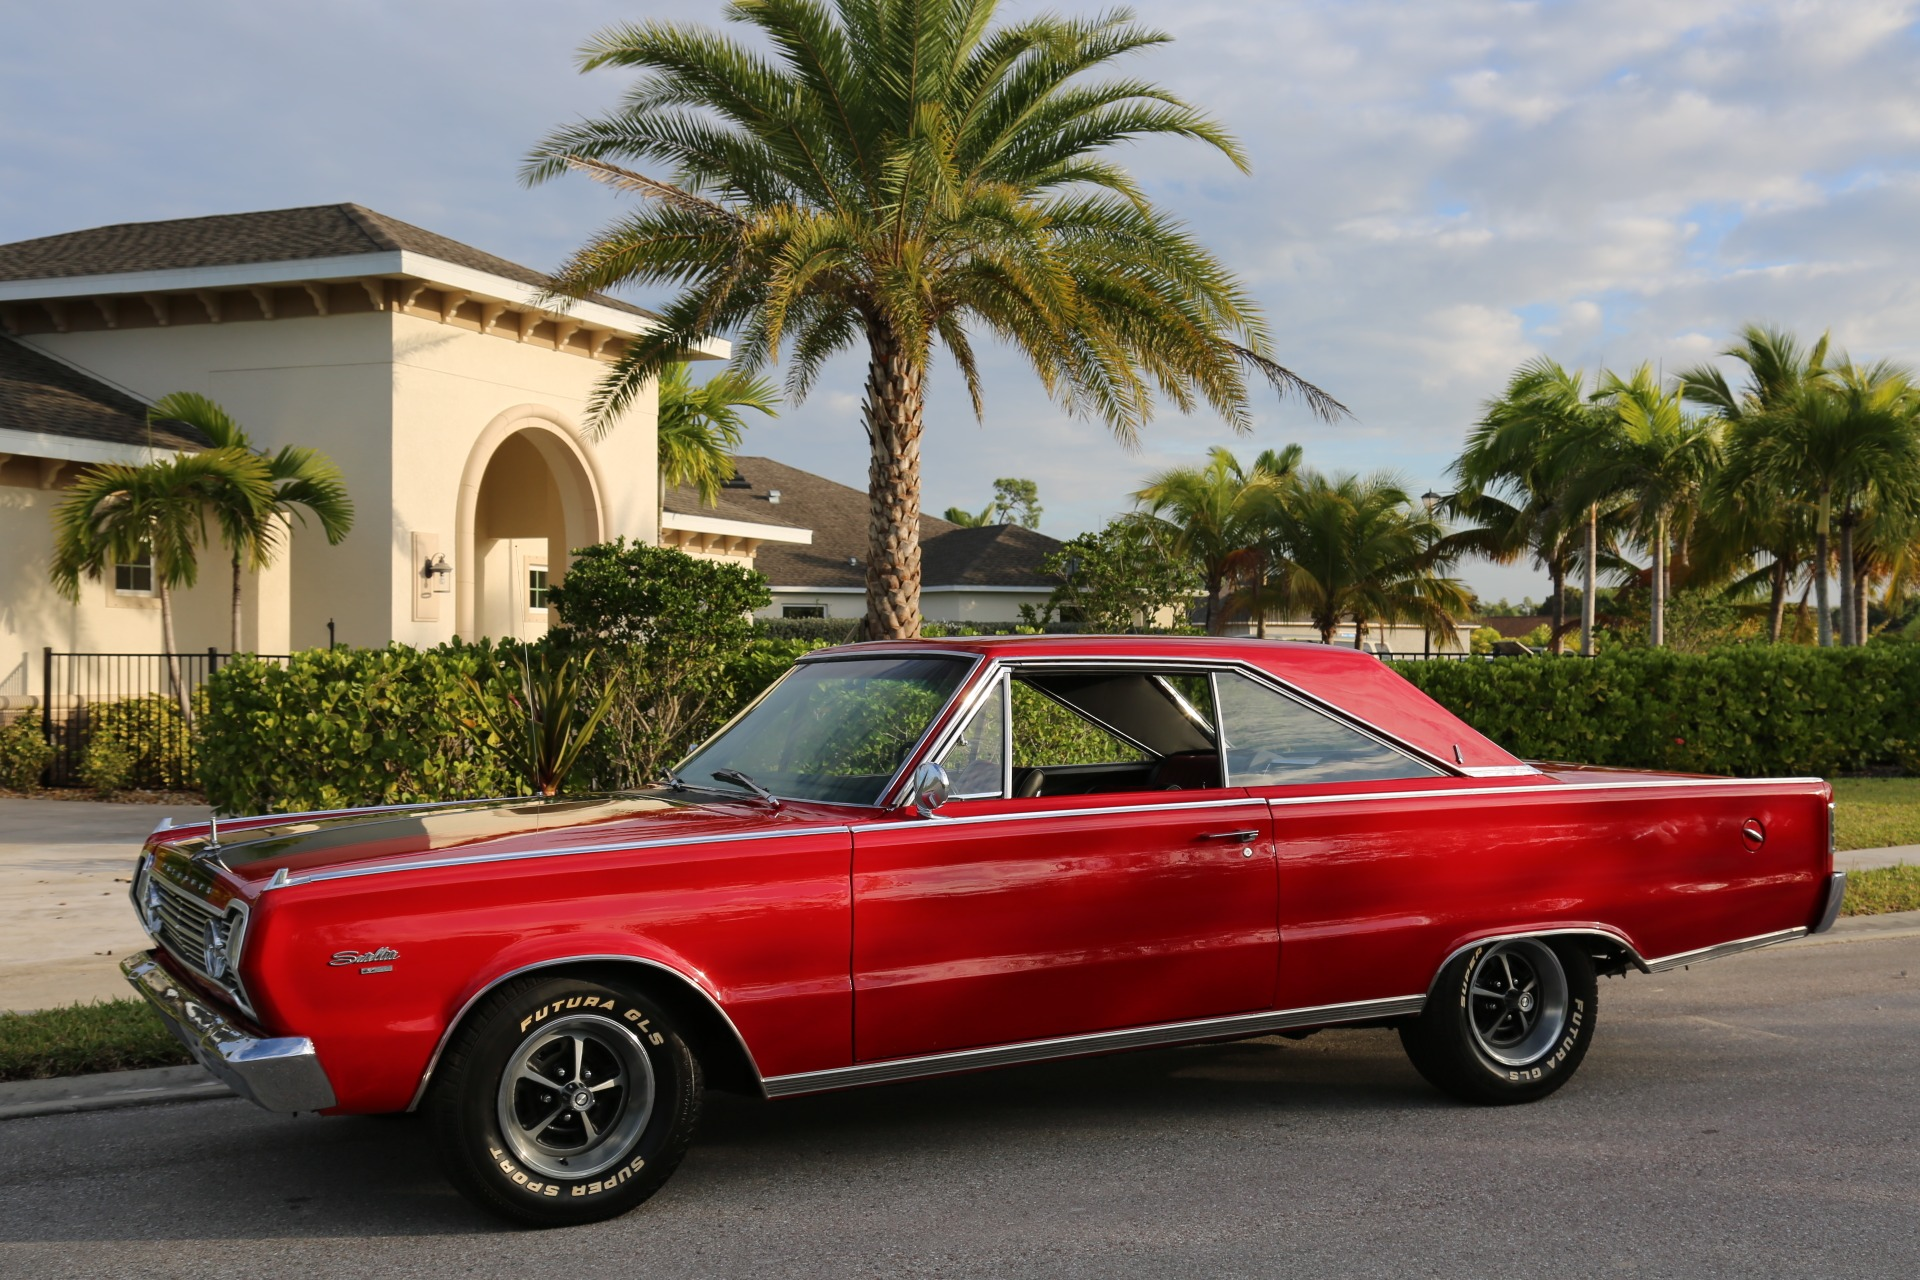 Used 1966 Plymouth Satellite 440 V8 Automatic for sale $19,900 at Muscle Cars for Sale Inc. in Fort Myers FL 33912 2